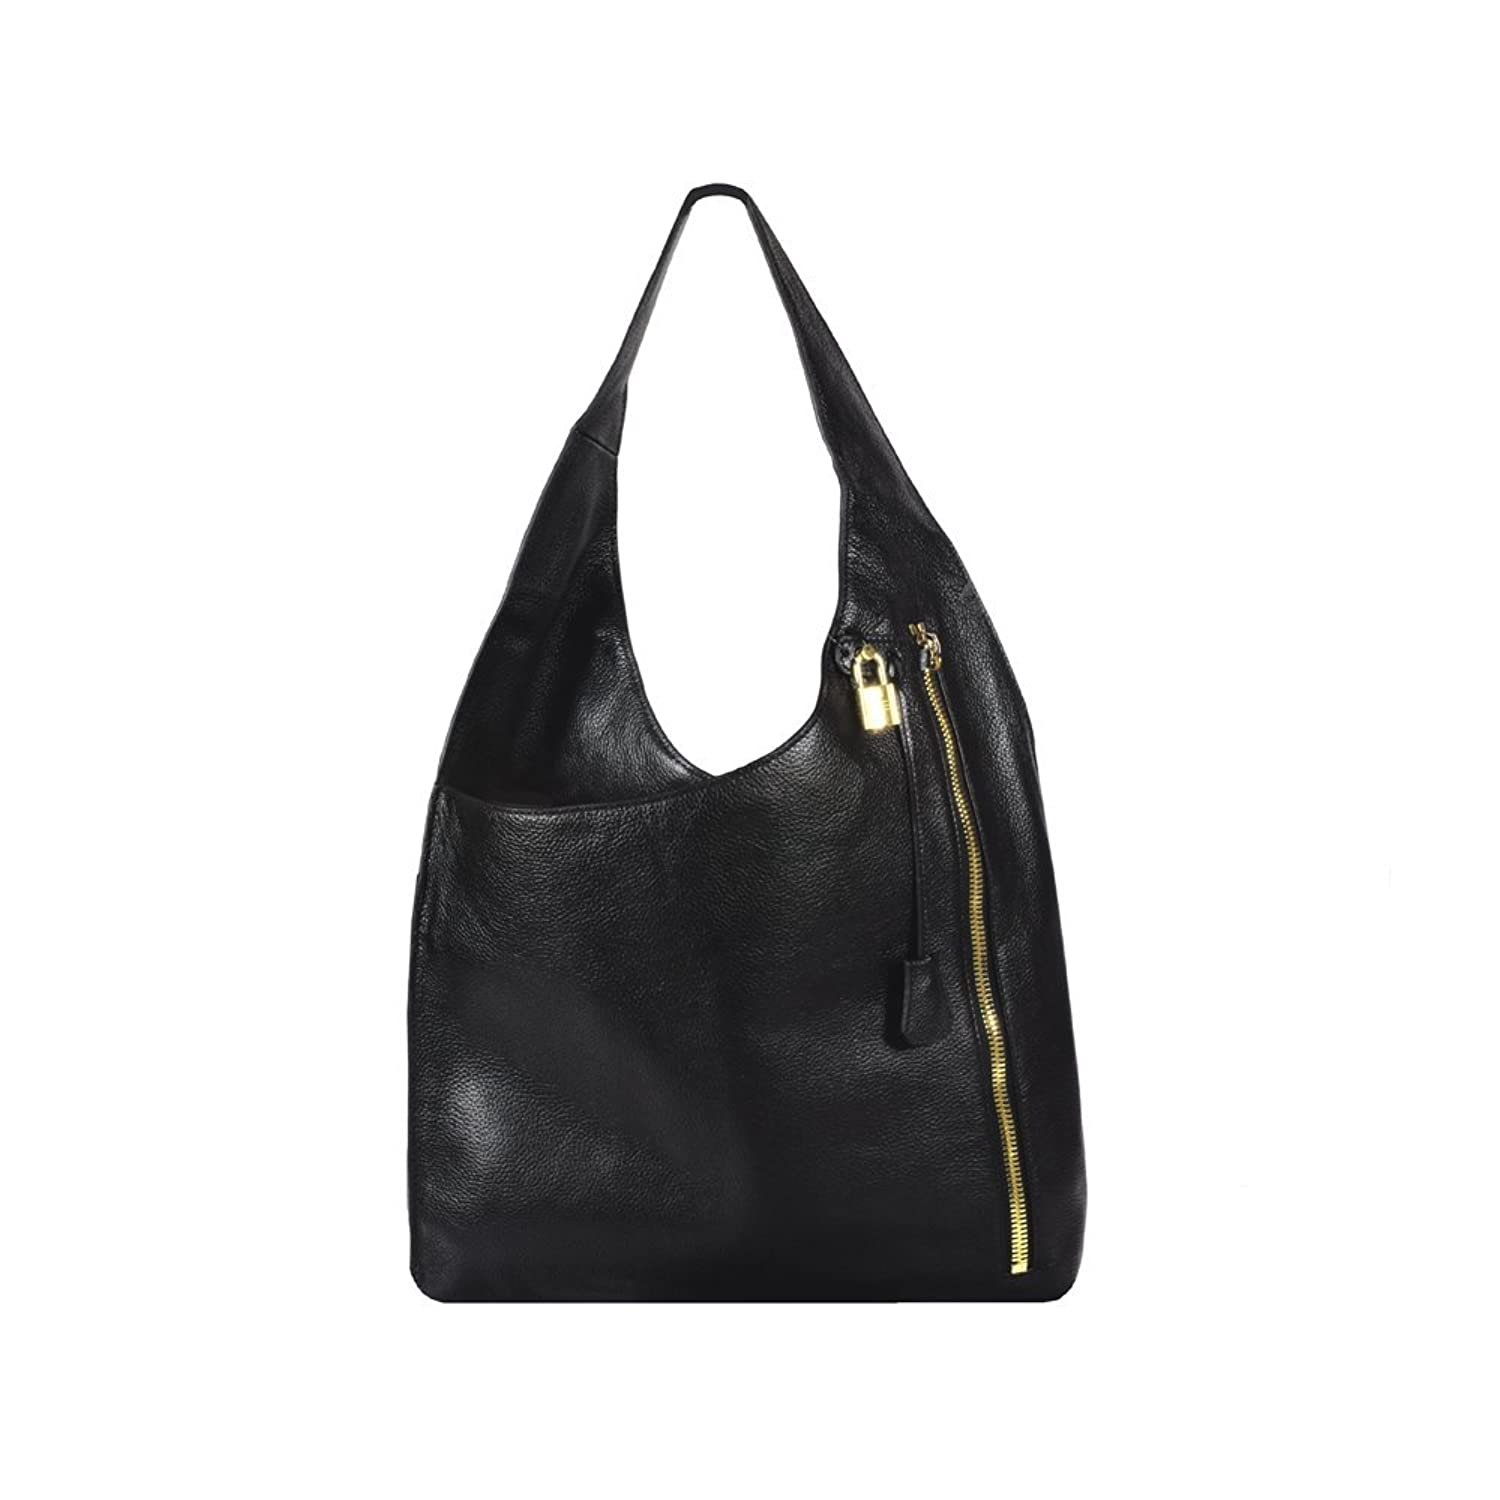 'Gisella2' Cutting Edge Black Leather Pebbled Hobo Handbag by Inzi